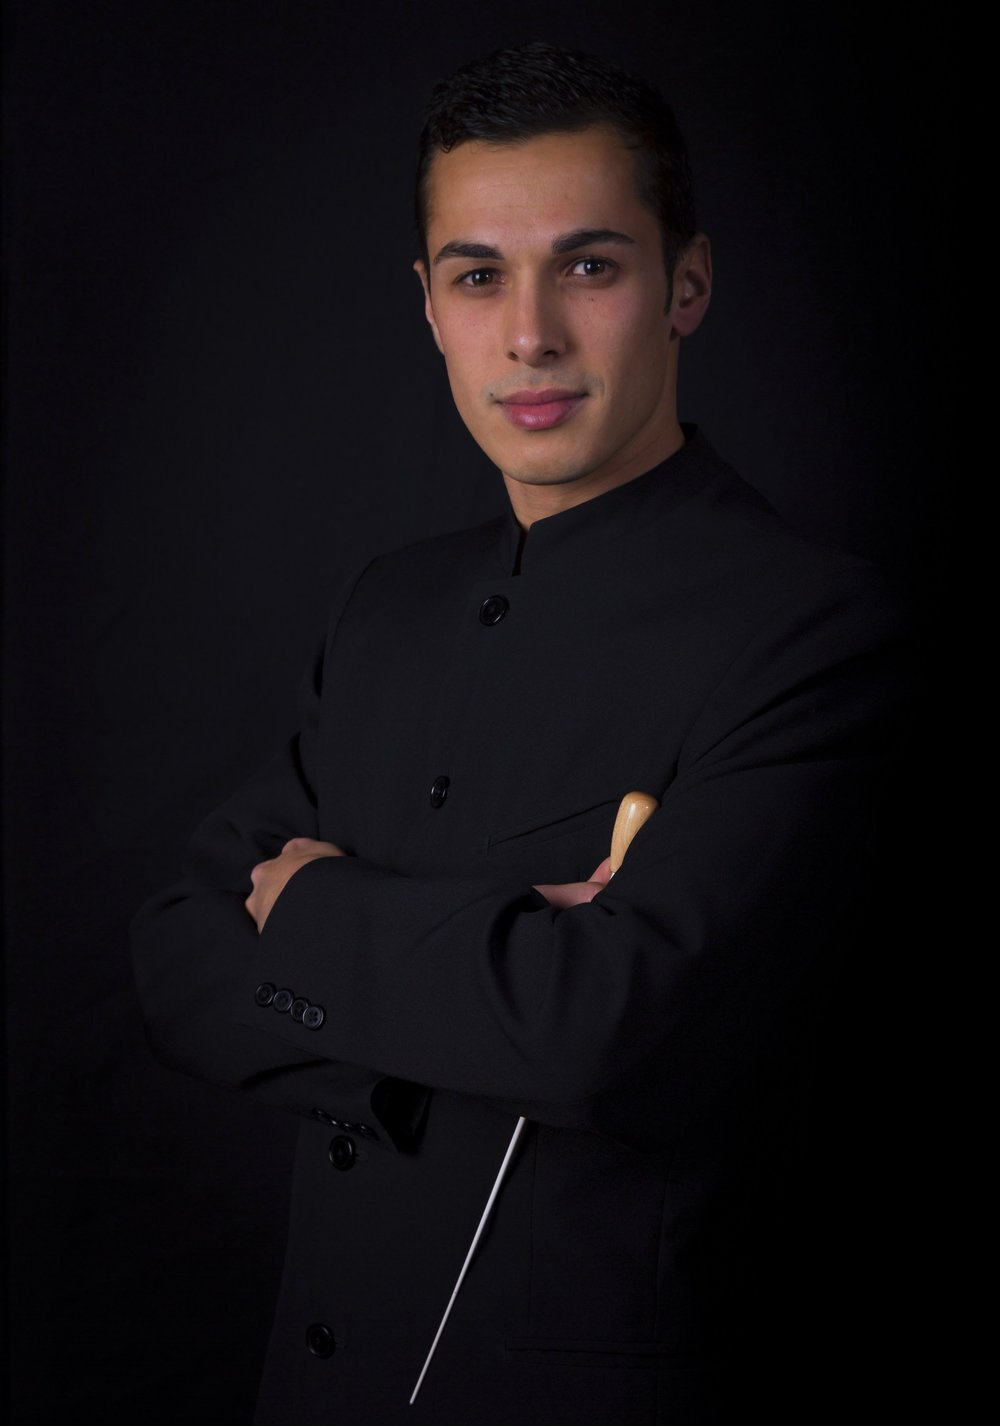 BIOGRAPHY - Born in Portugal, Diogo Costa is a rising star conductor with a vast knowledge of repertoire ranging from baroque to contemporary music.In the UK, he made his debut with the BBC National Orchestra of Wales, conducting a world premiere by Professor Andrew Lewis in March 2018, as well as with the BBC Philharmonic Orchestra in June. He has also worked with the West European Studio Orchestra on a project recorded in the legendary Abbey Road Studios in London.Upcoming projects include concerts with the Portuguese Symphony Orchestra for the seventh International Jorma Panula Conducting Competition.Full biographies are available in: EN | FRRepertoire: coming soon